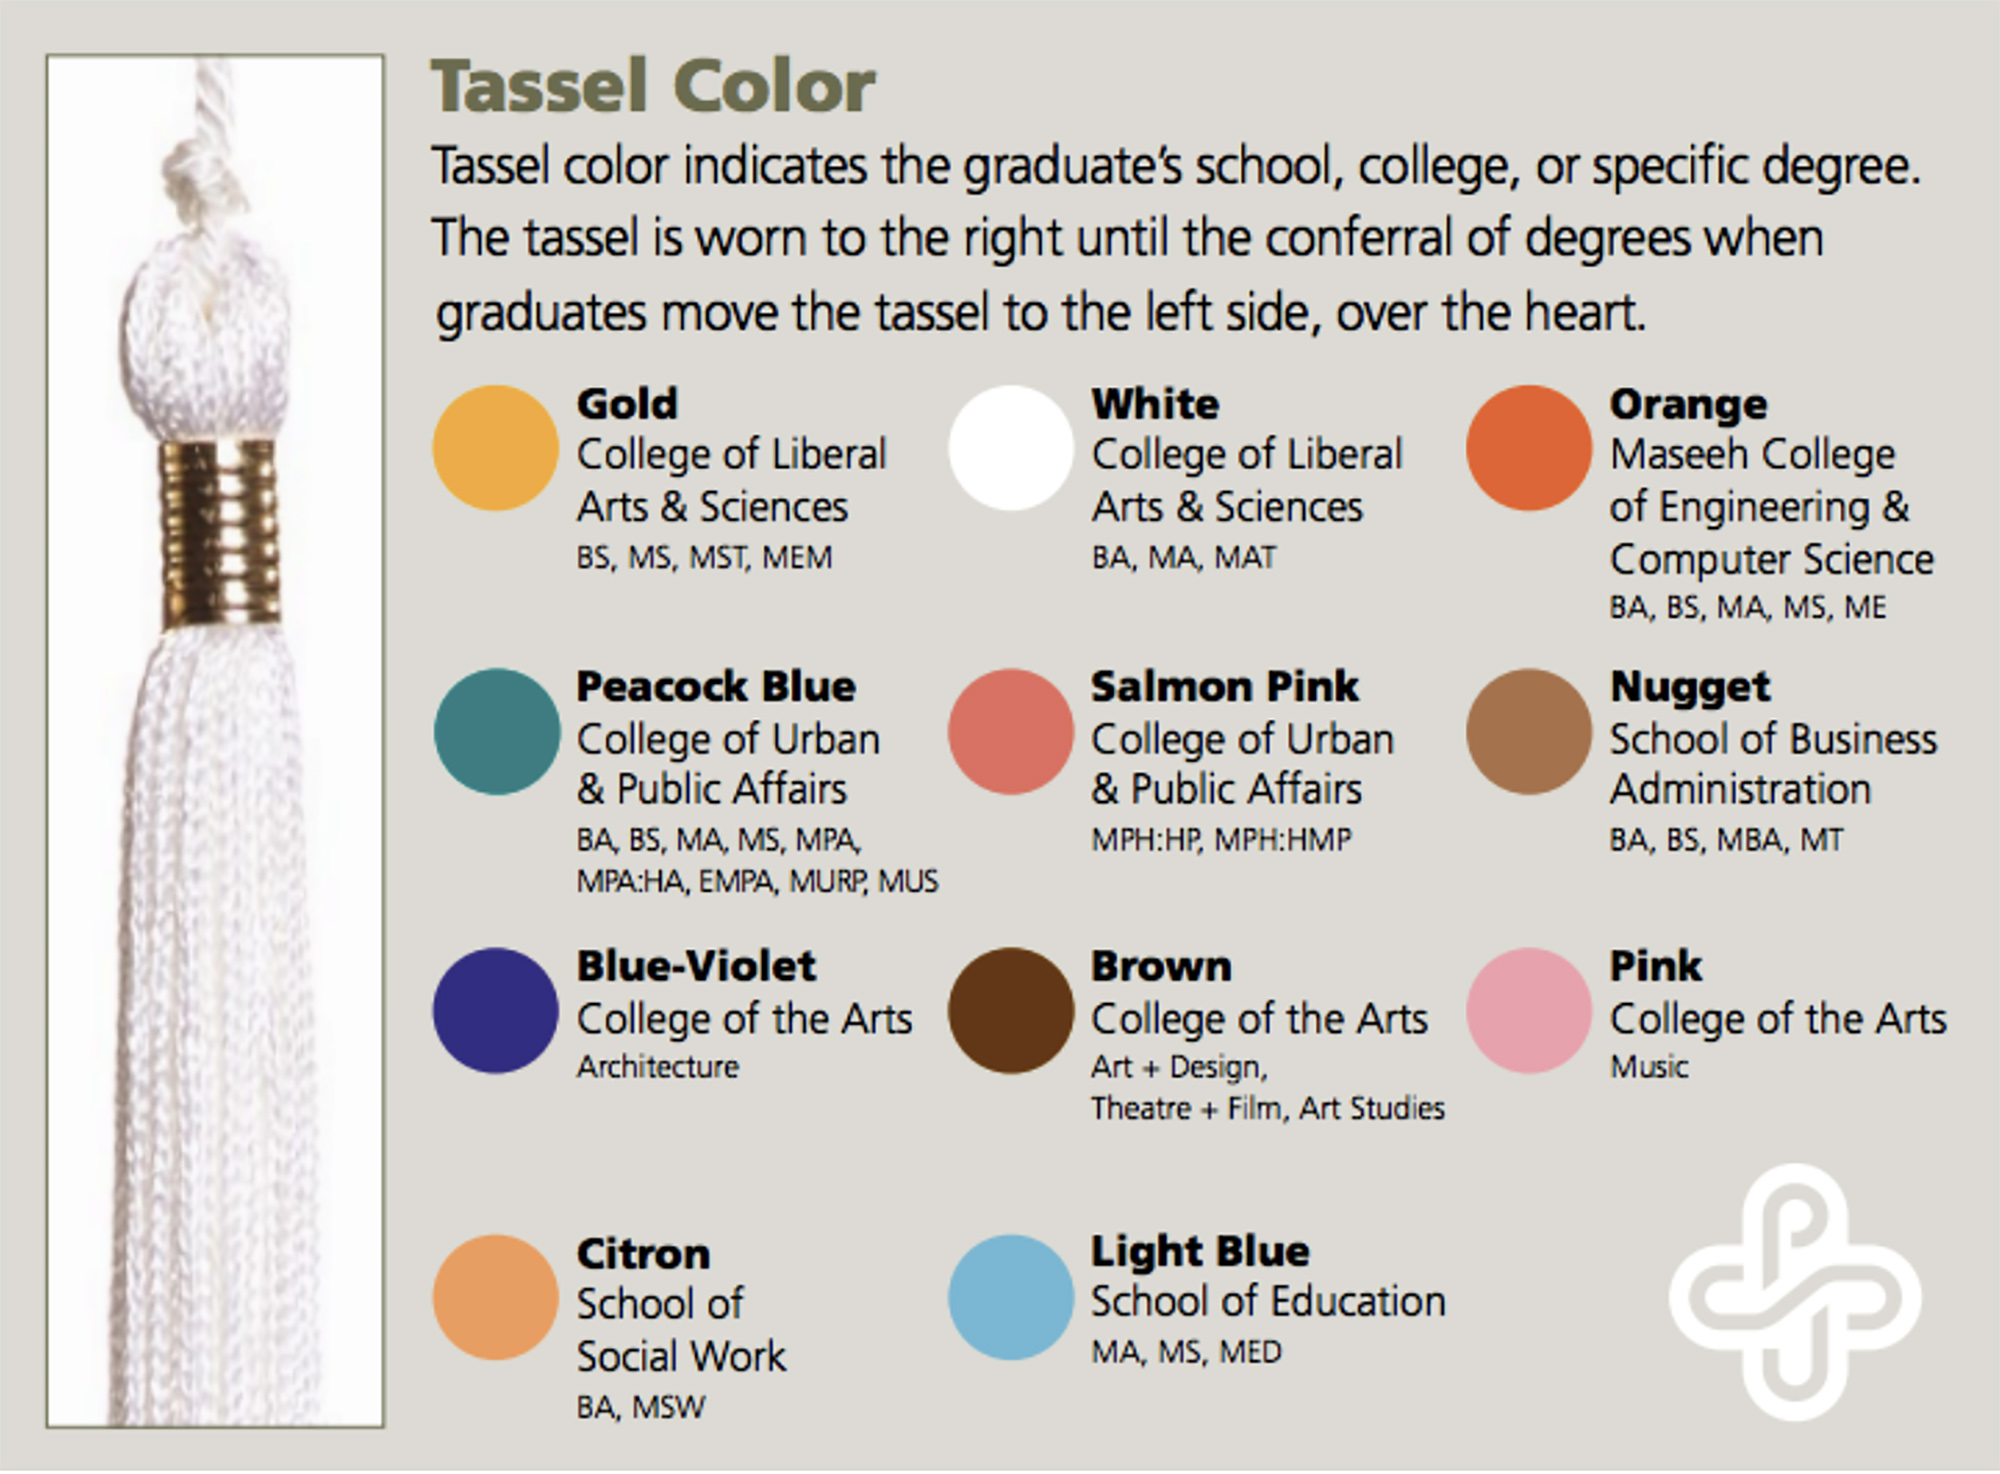 Tassel color indicates school, college or specific degree.